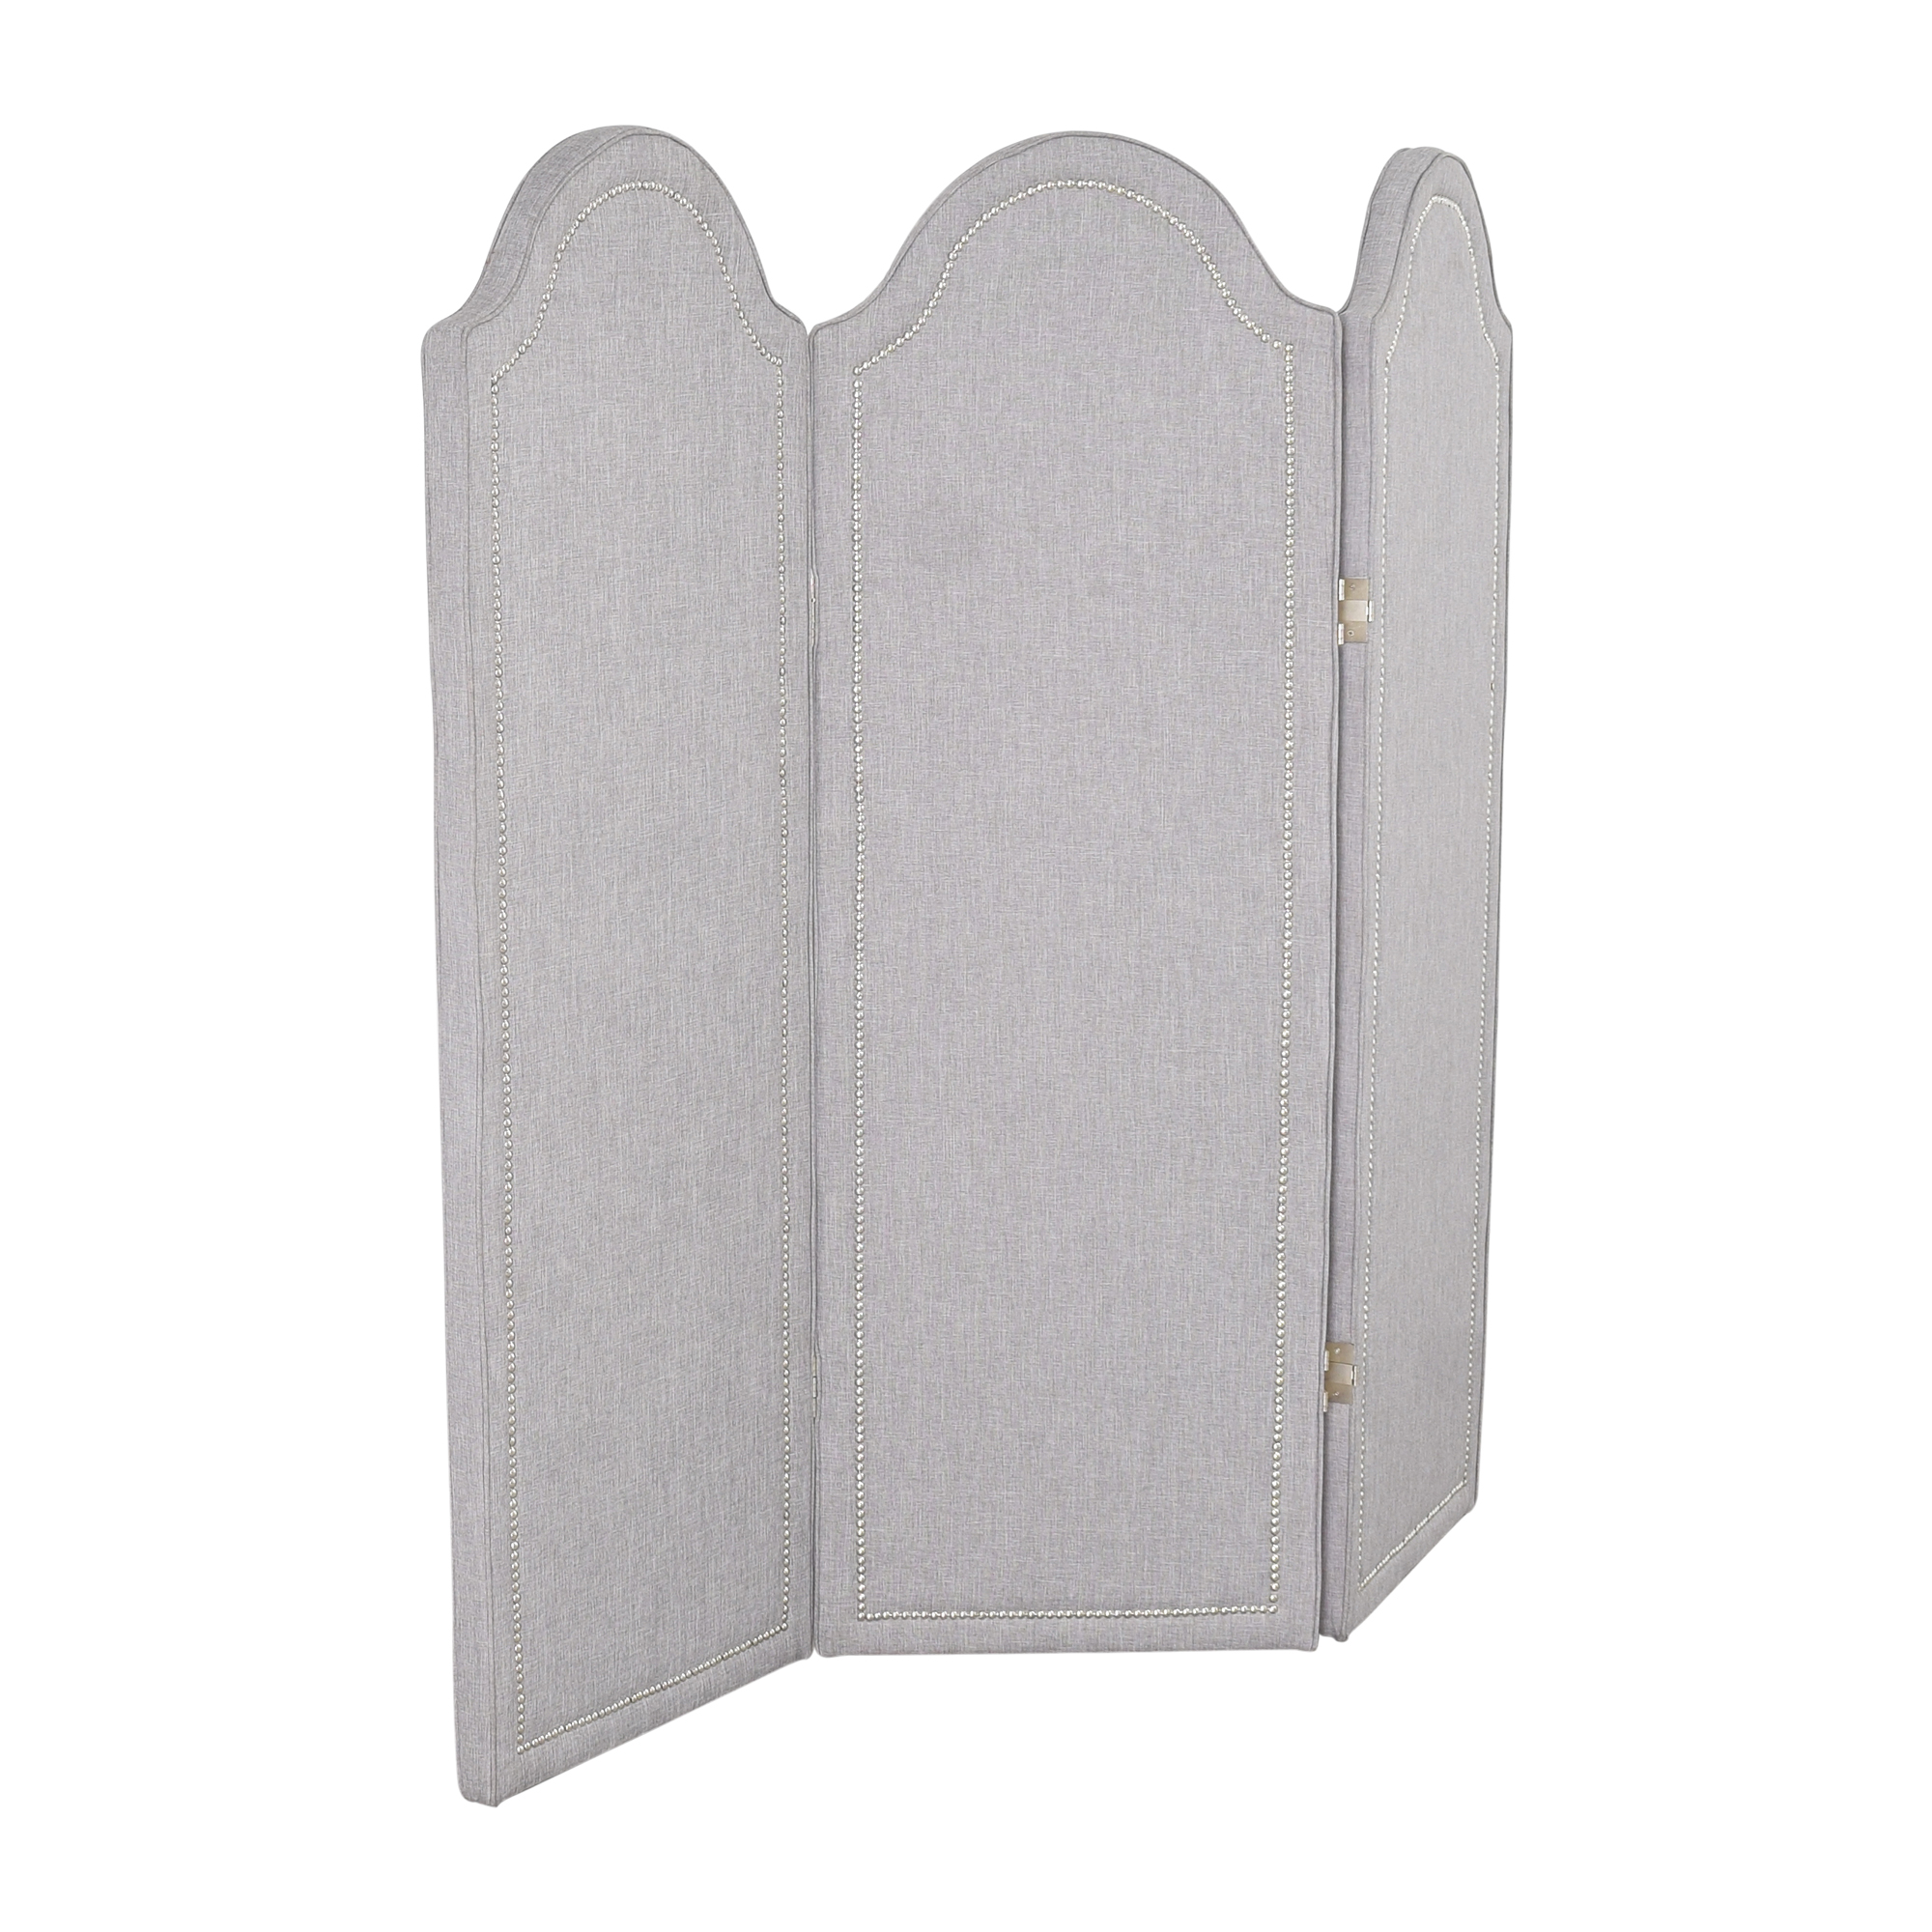 Inspire Q Inspire Q Ainslie Curved Top Three-Piece Divider ma